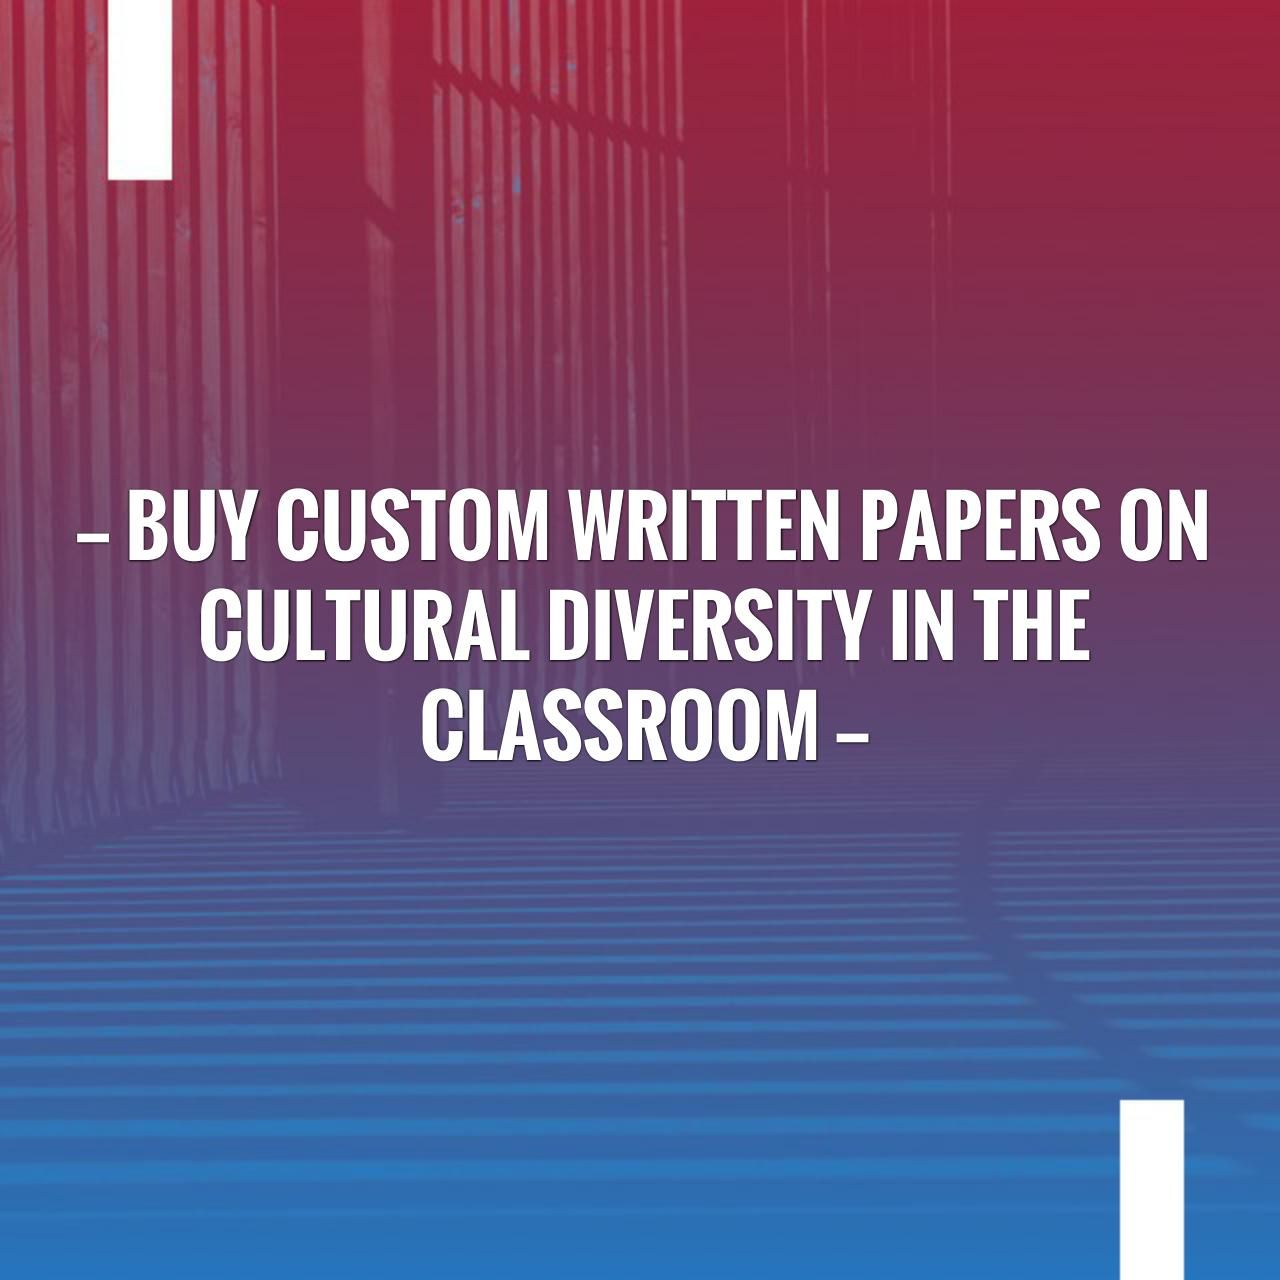 custom written papers Custom written papers- get top quality custom written papers, custom written essays, custom written term paper, dissertation, research papers, thesis and coursework by qualified professionals.